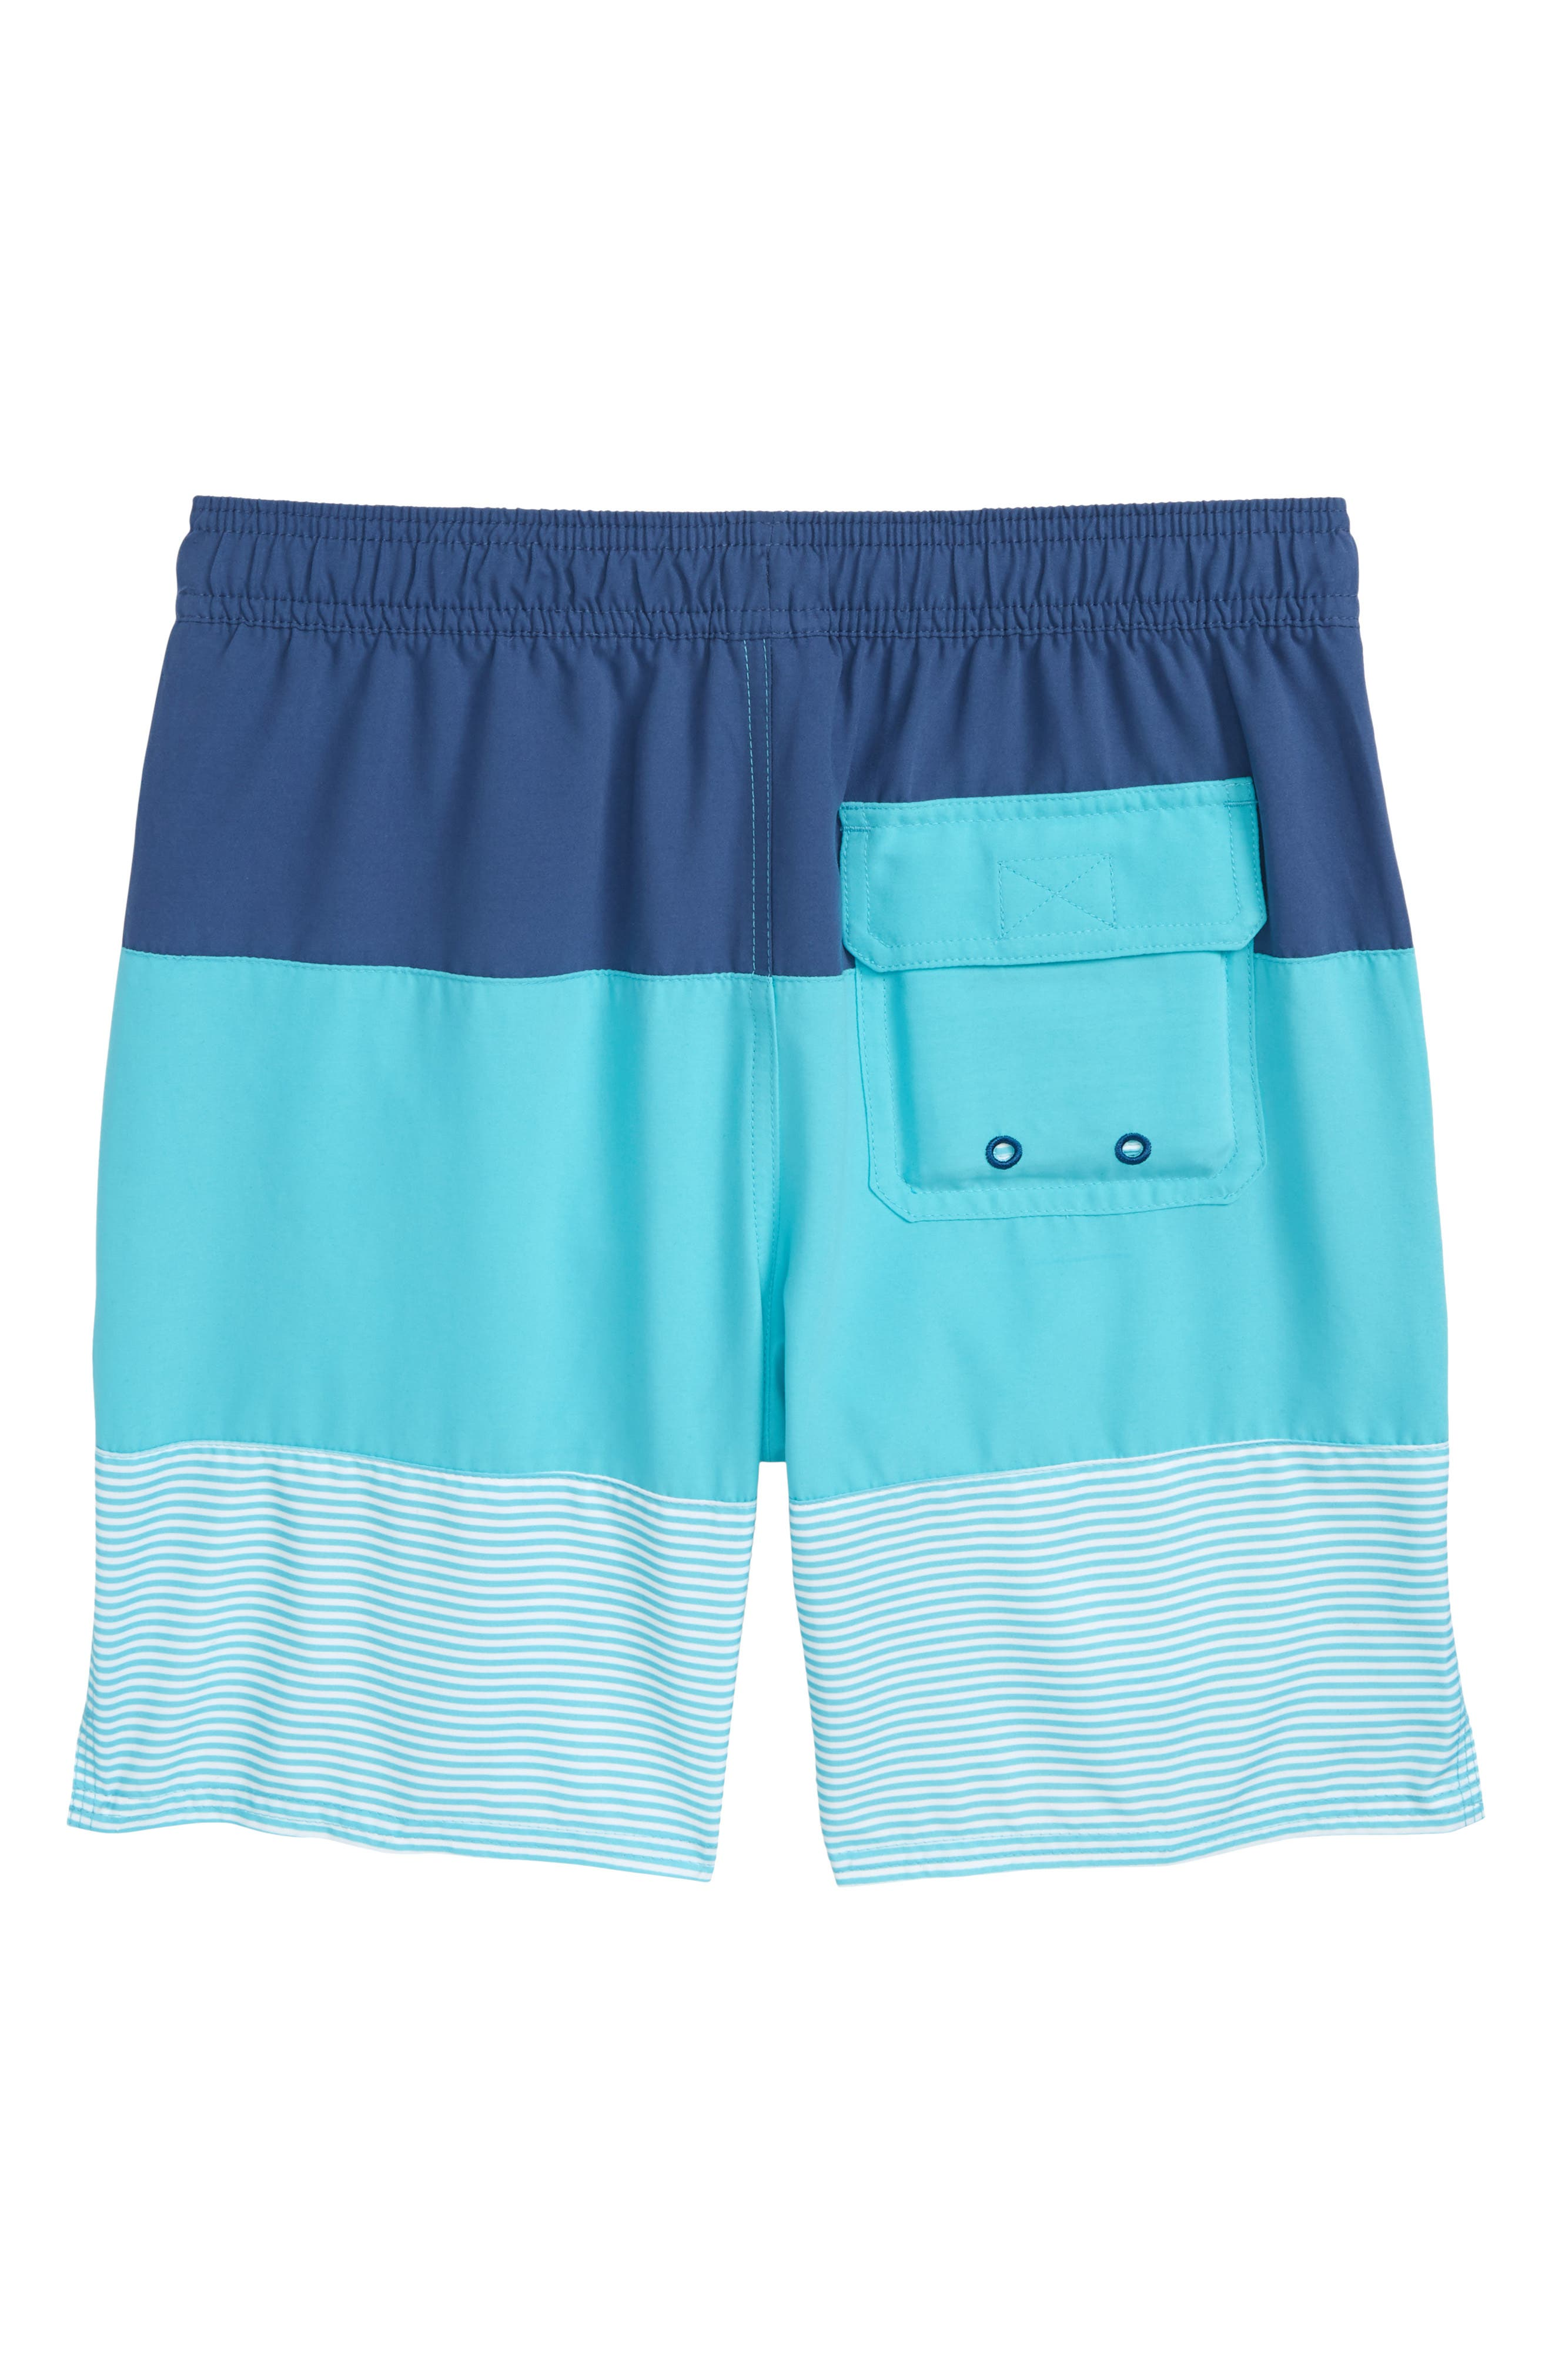 Chappy Pieced Swim Trunks,                             Alternate thumbnail 2, color,                             Turqs